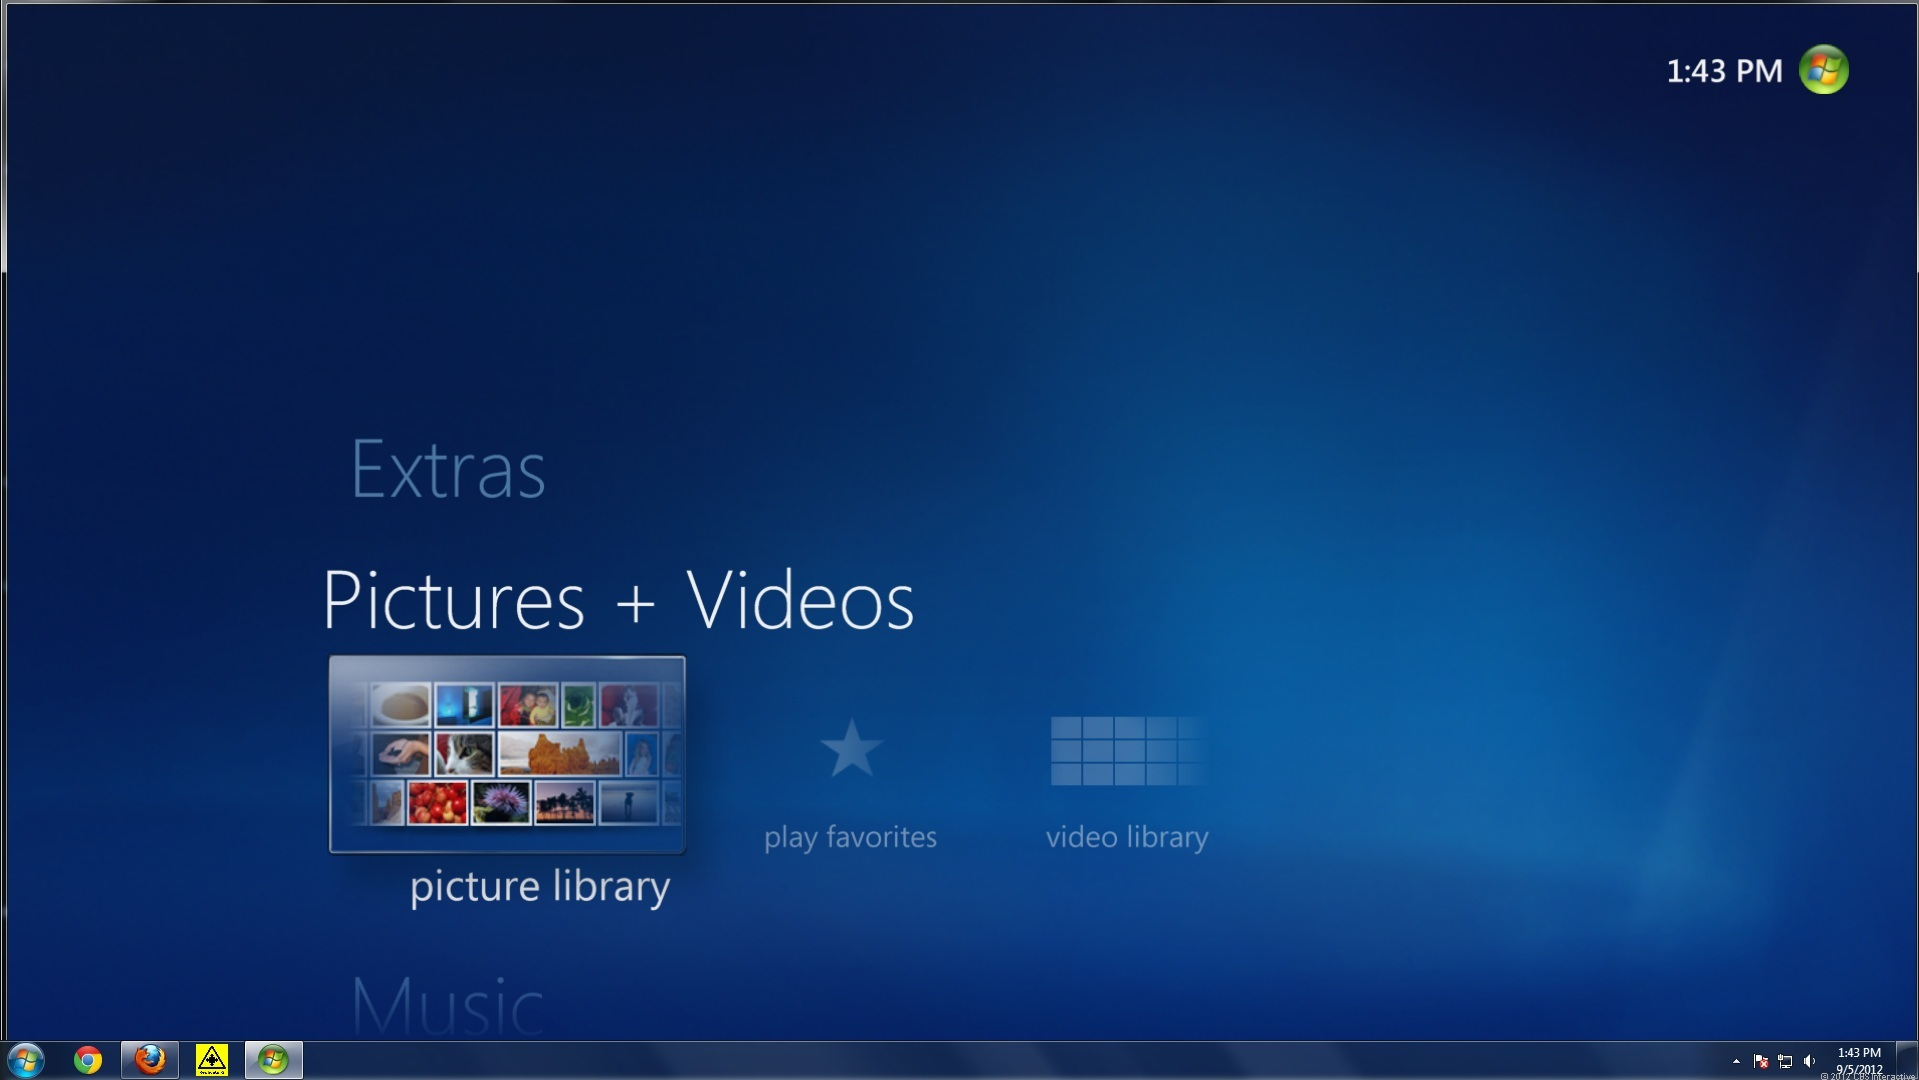 Windows Media Center and its DVD player software are no longer standard features in Windows 8.